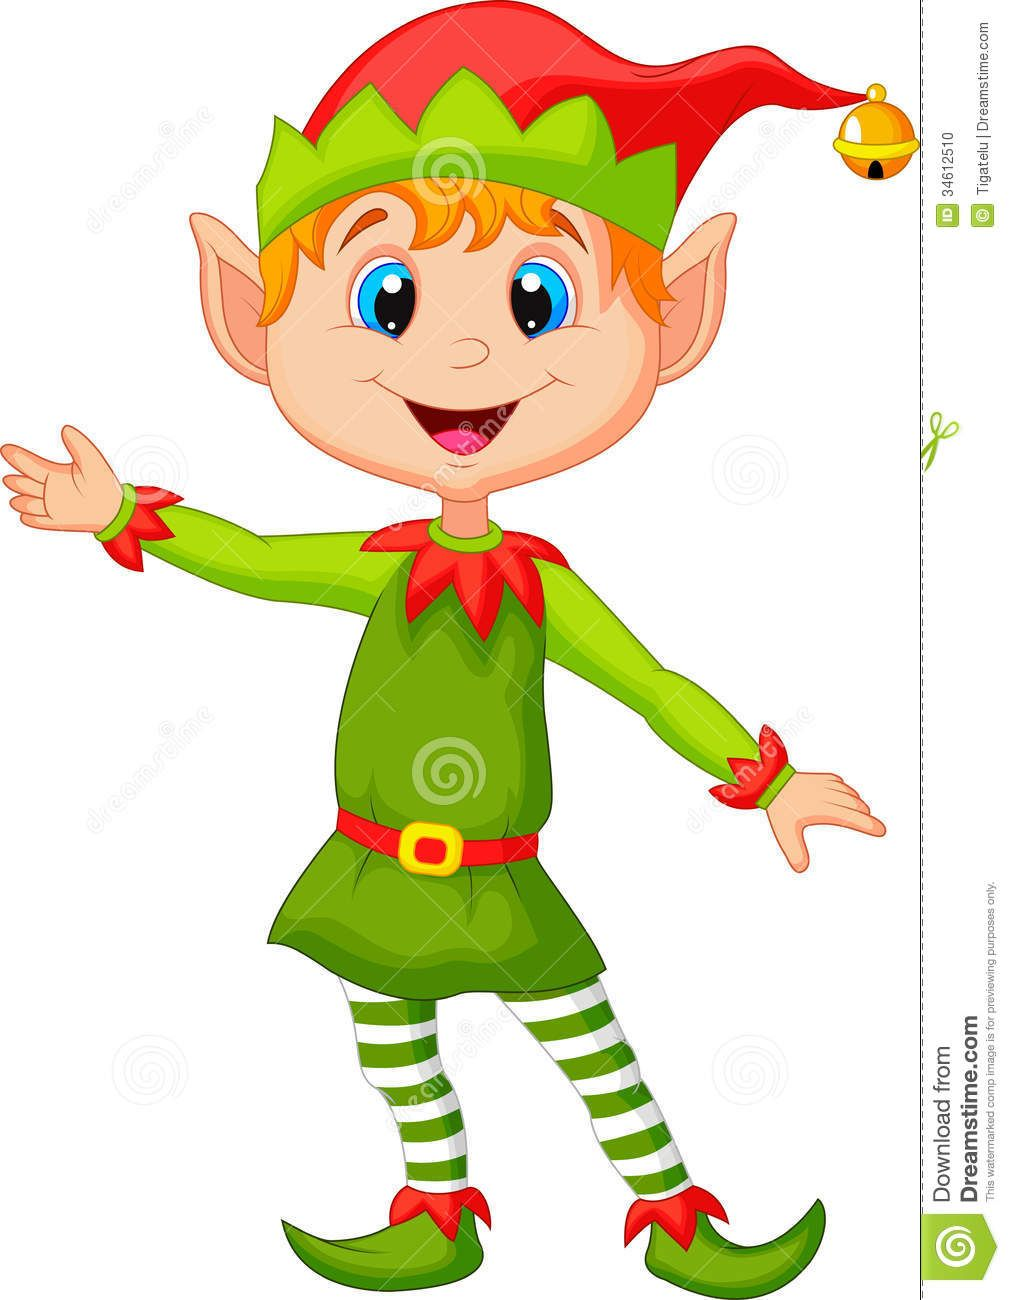 christmas elf illustration of cute christmas elf cartoon presenting elf decorations handmade christmas - Animated Christmas Elves Decorations